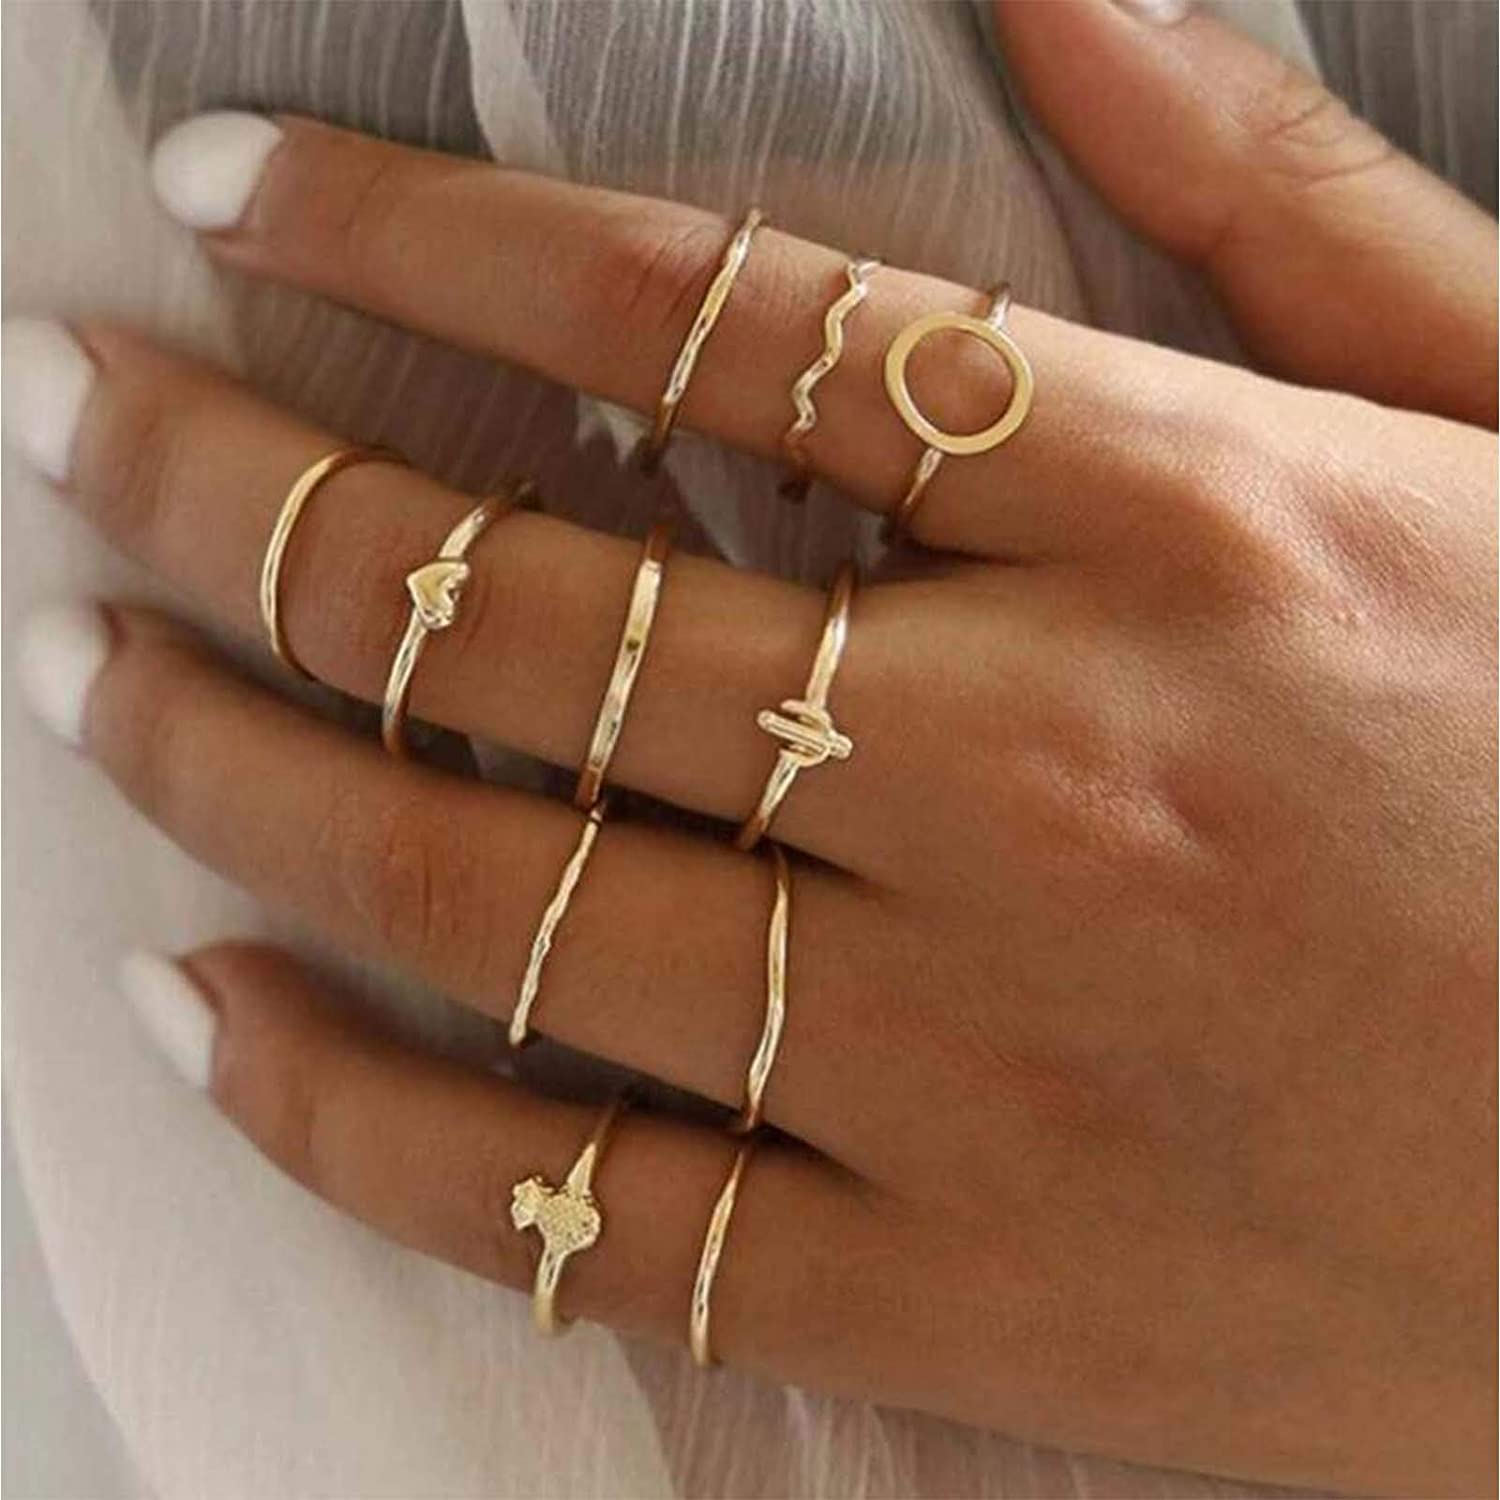 TseanYi Boho Knuckle Rings Set Gold Stacking Finger Rings Retro Half Open Midi Rings Hand Rings Accessories for Women and Teen Girls (Pattern 2)